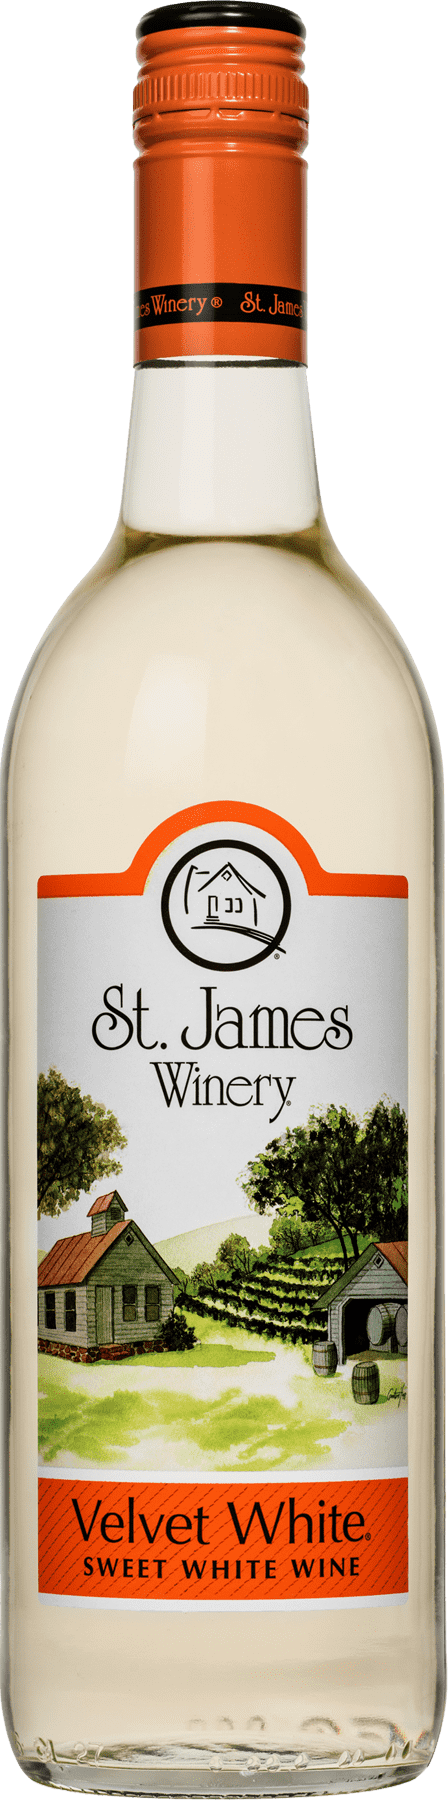 Velvet White Sweet Wine - St. James Winery Missouri